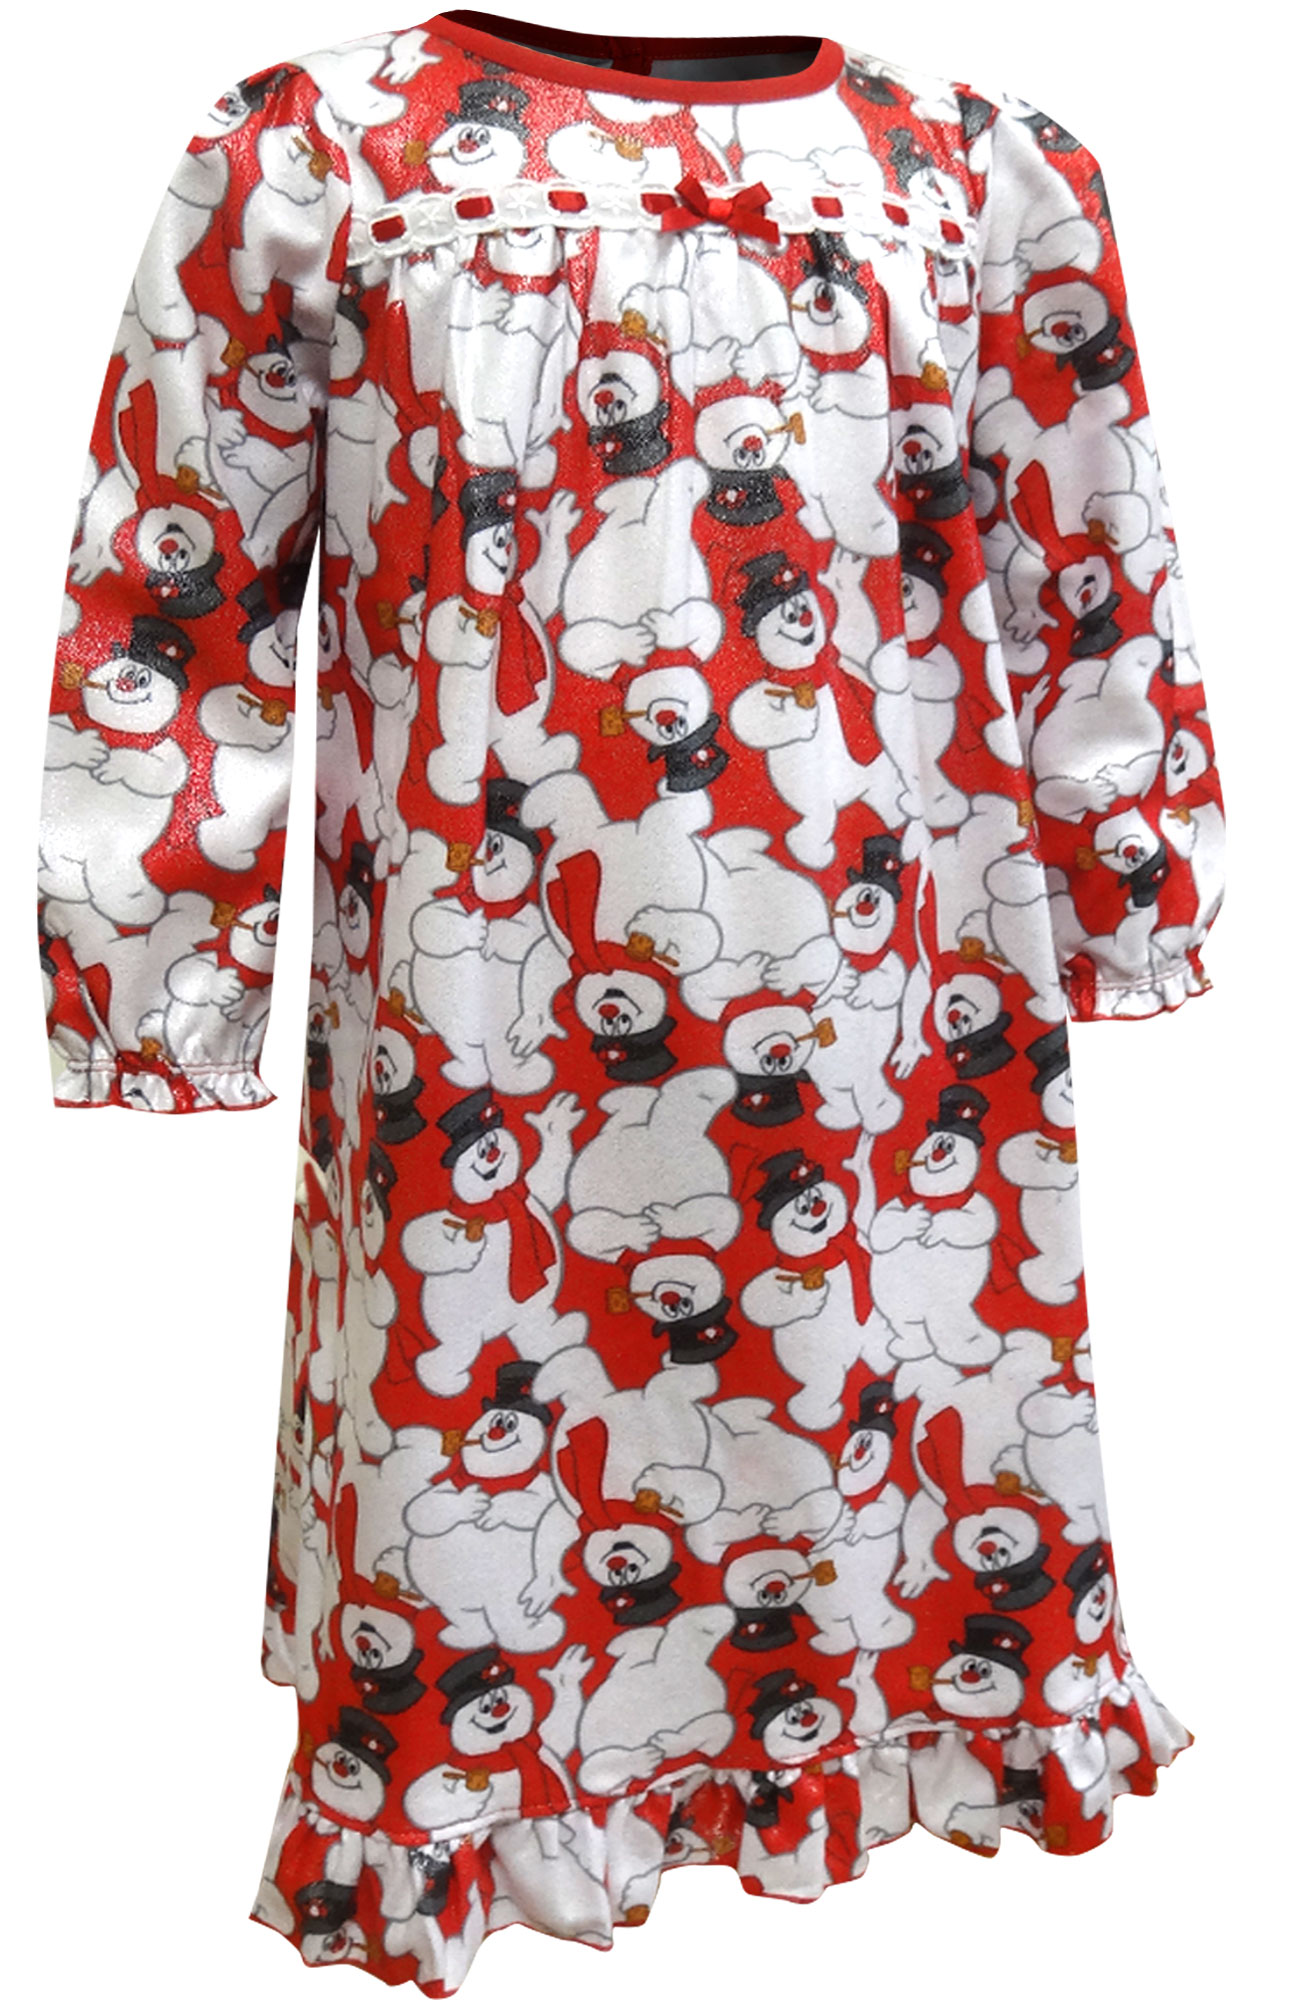 Image of Christmas Flannel Frosty the Snowman Nightgown for Toddler Girls